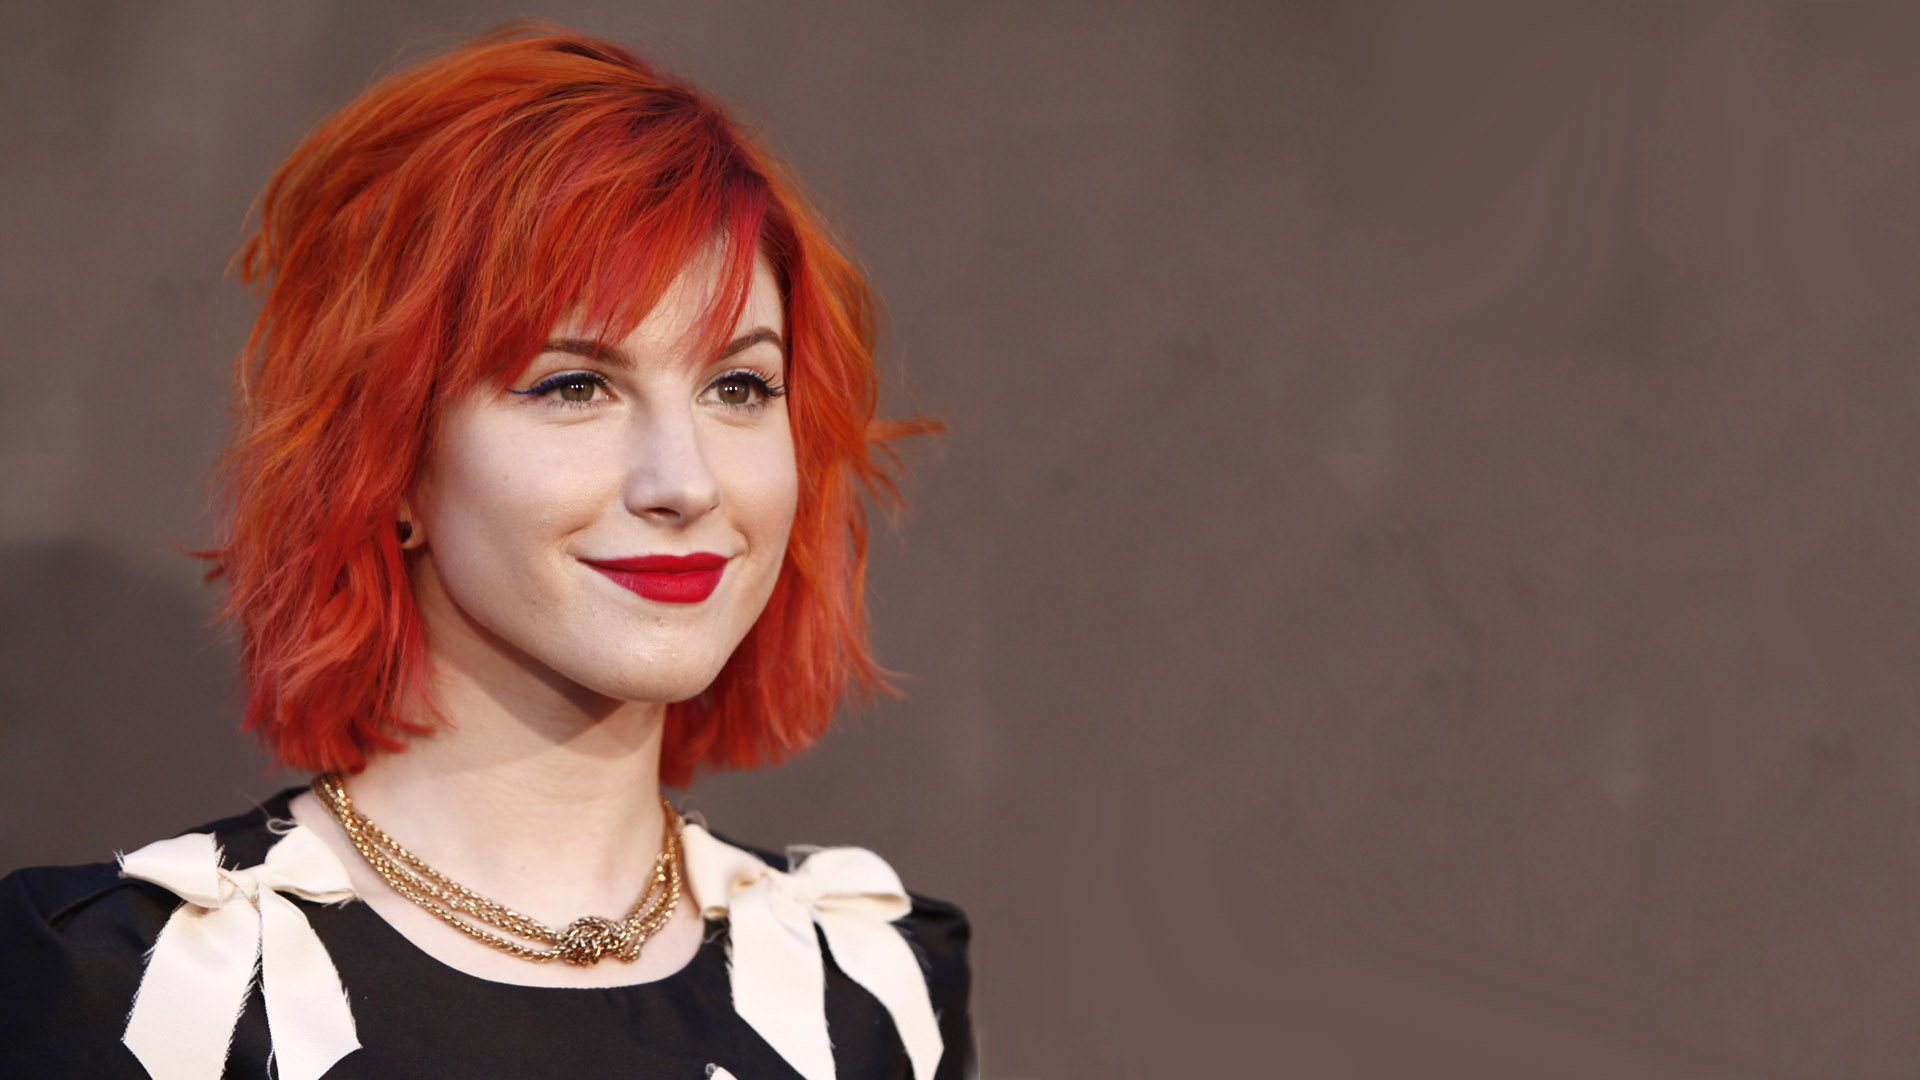 hayley williams free hd - photo #3